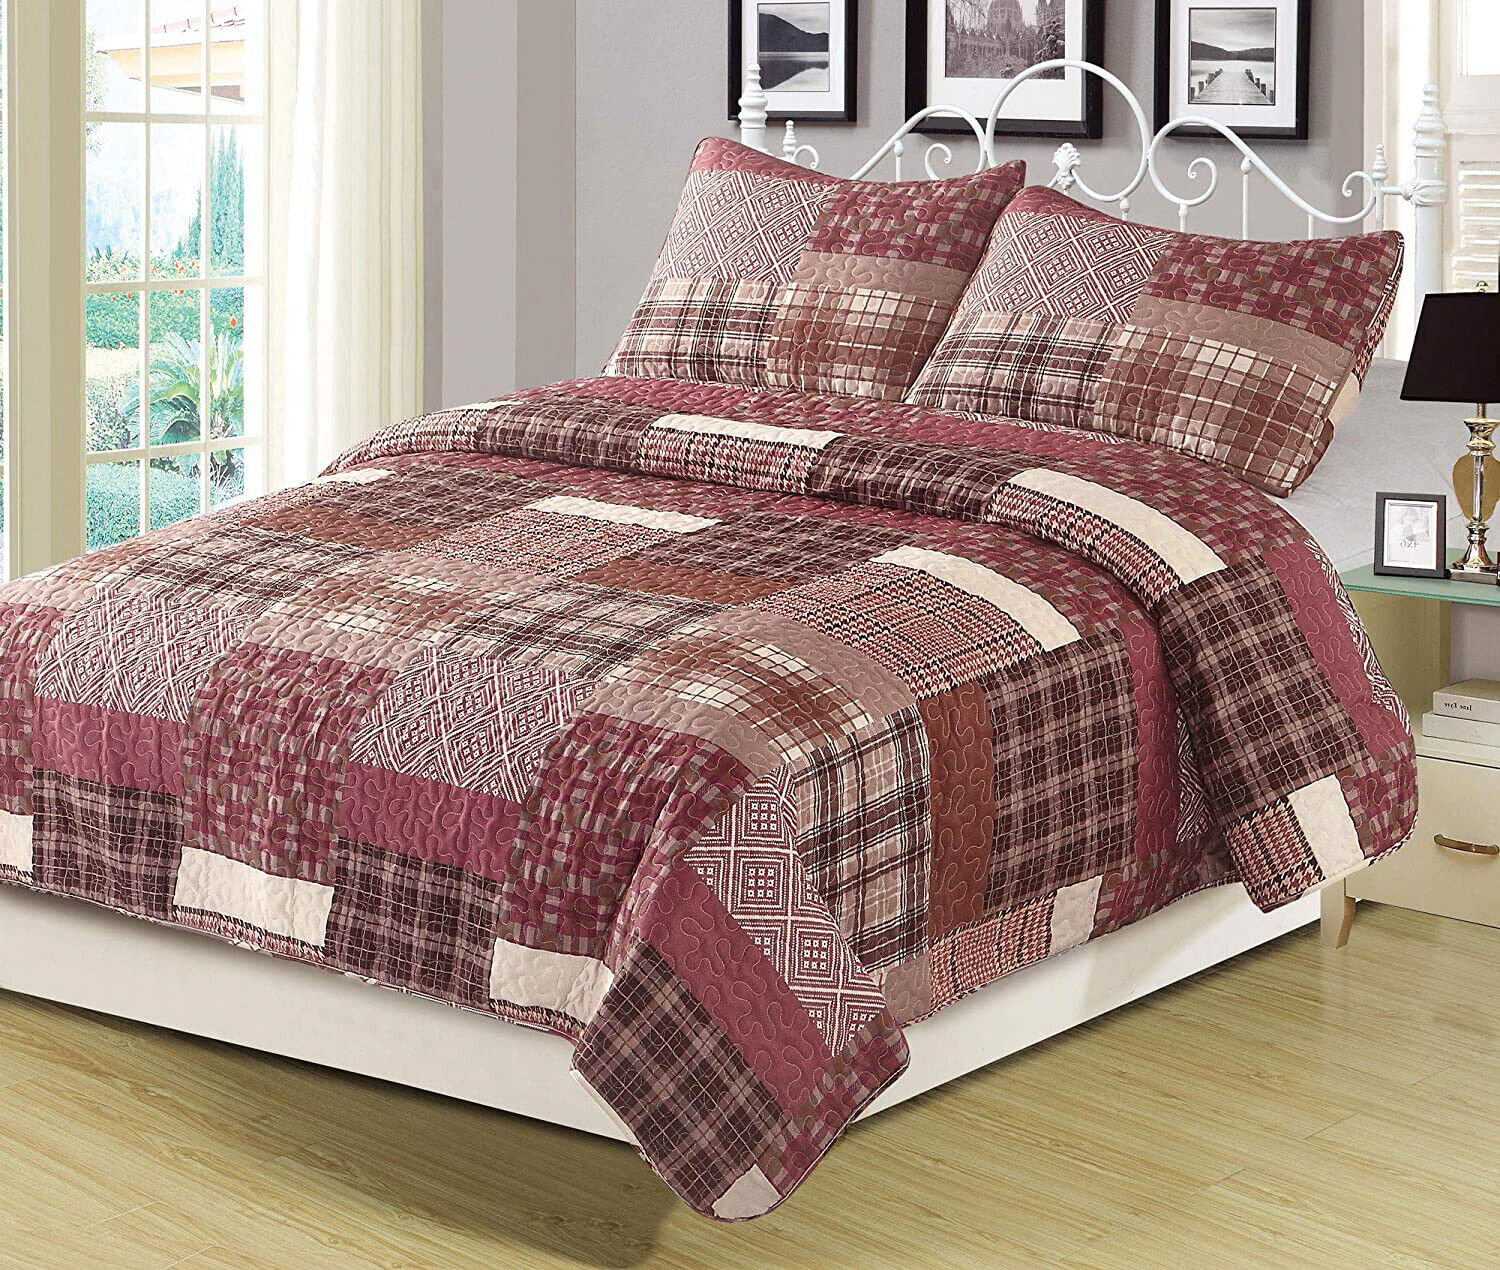 Twin Full/Queen or King Quilt Red Plaid Patchwork Bedspread Bedding Set Bedding